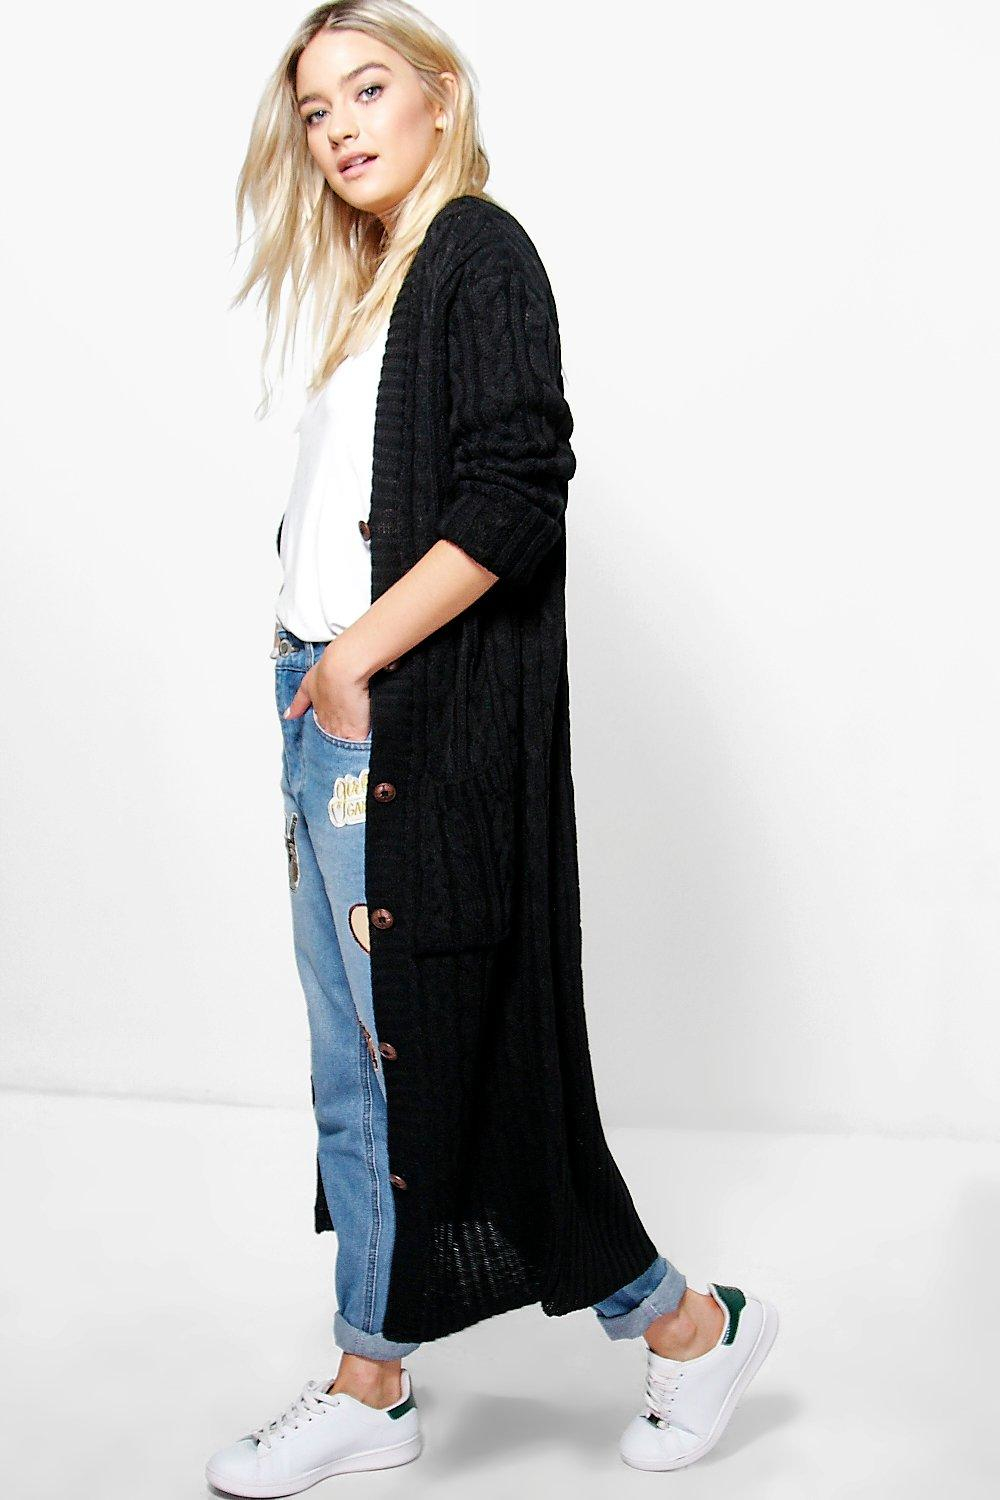 Sheer maxi cardigan made from lightweight chiffon fabric. Great layering piece. Features banded trim and long sleeves. Content & Care % Polyester Machine wash delicate cold, line dry Made in USA Size & Fit Model is wearing size small Measurements taken from.